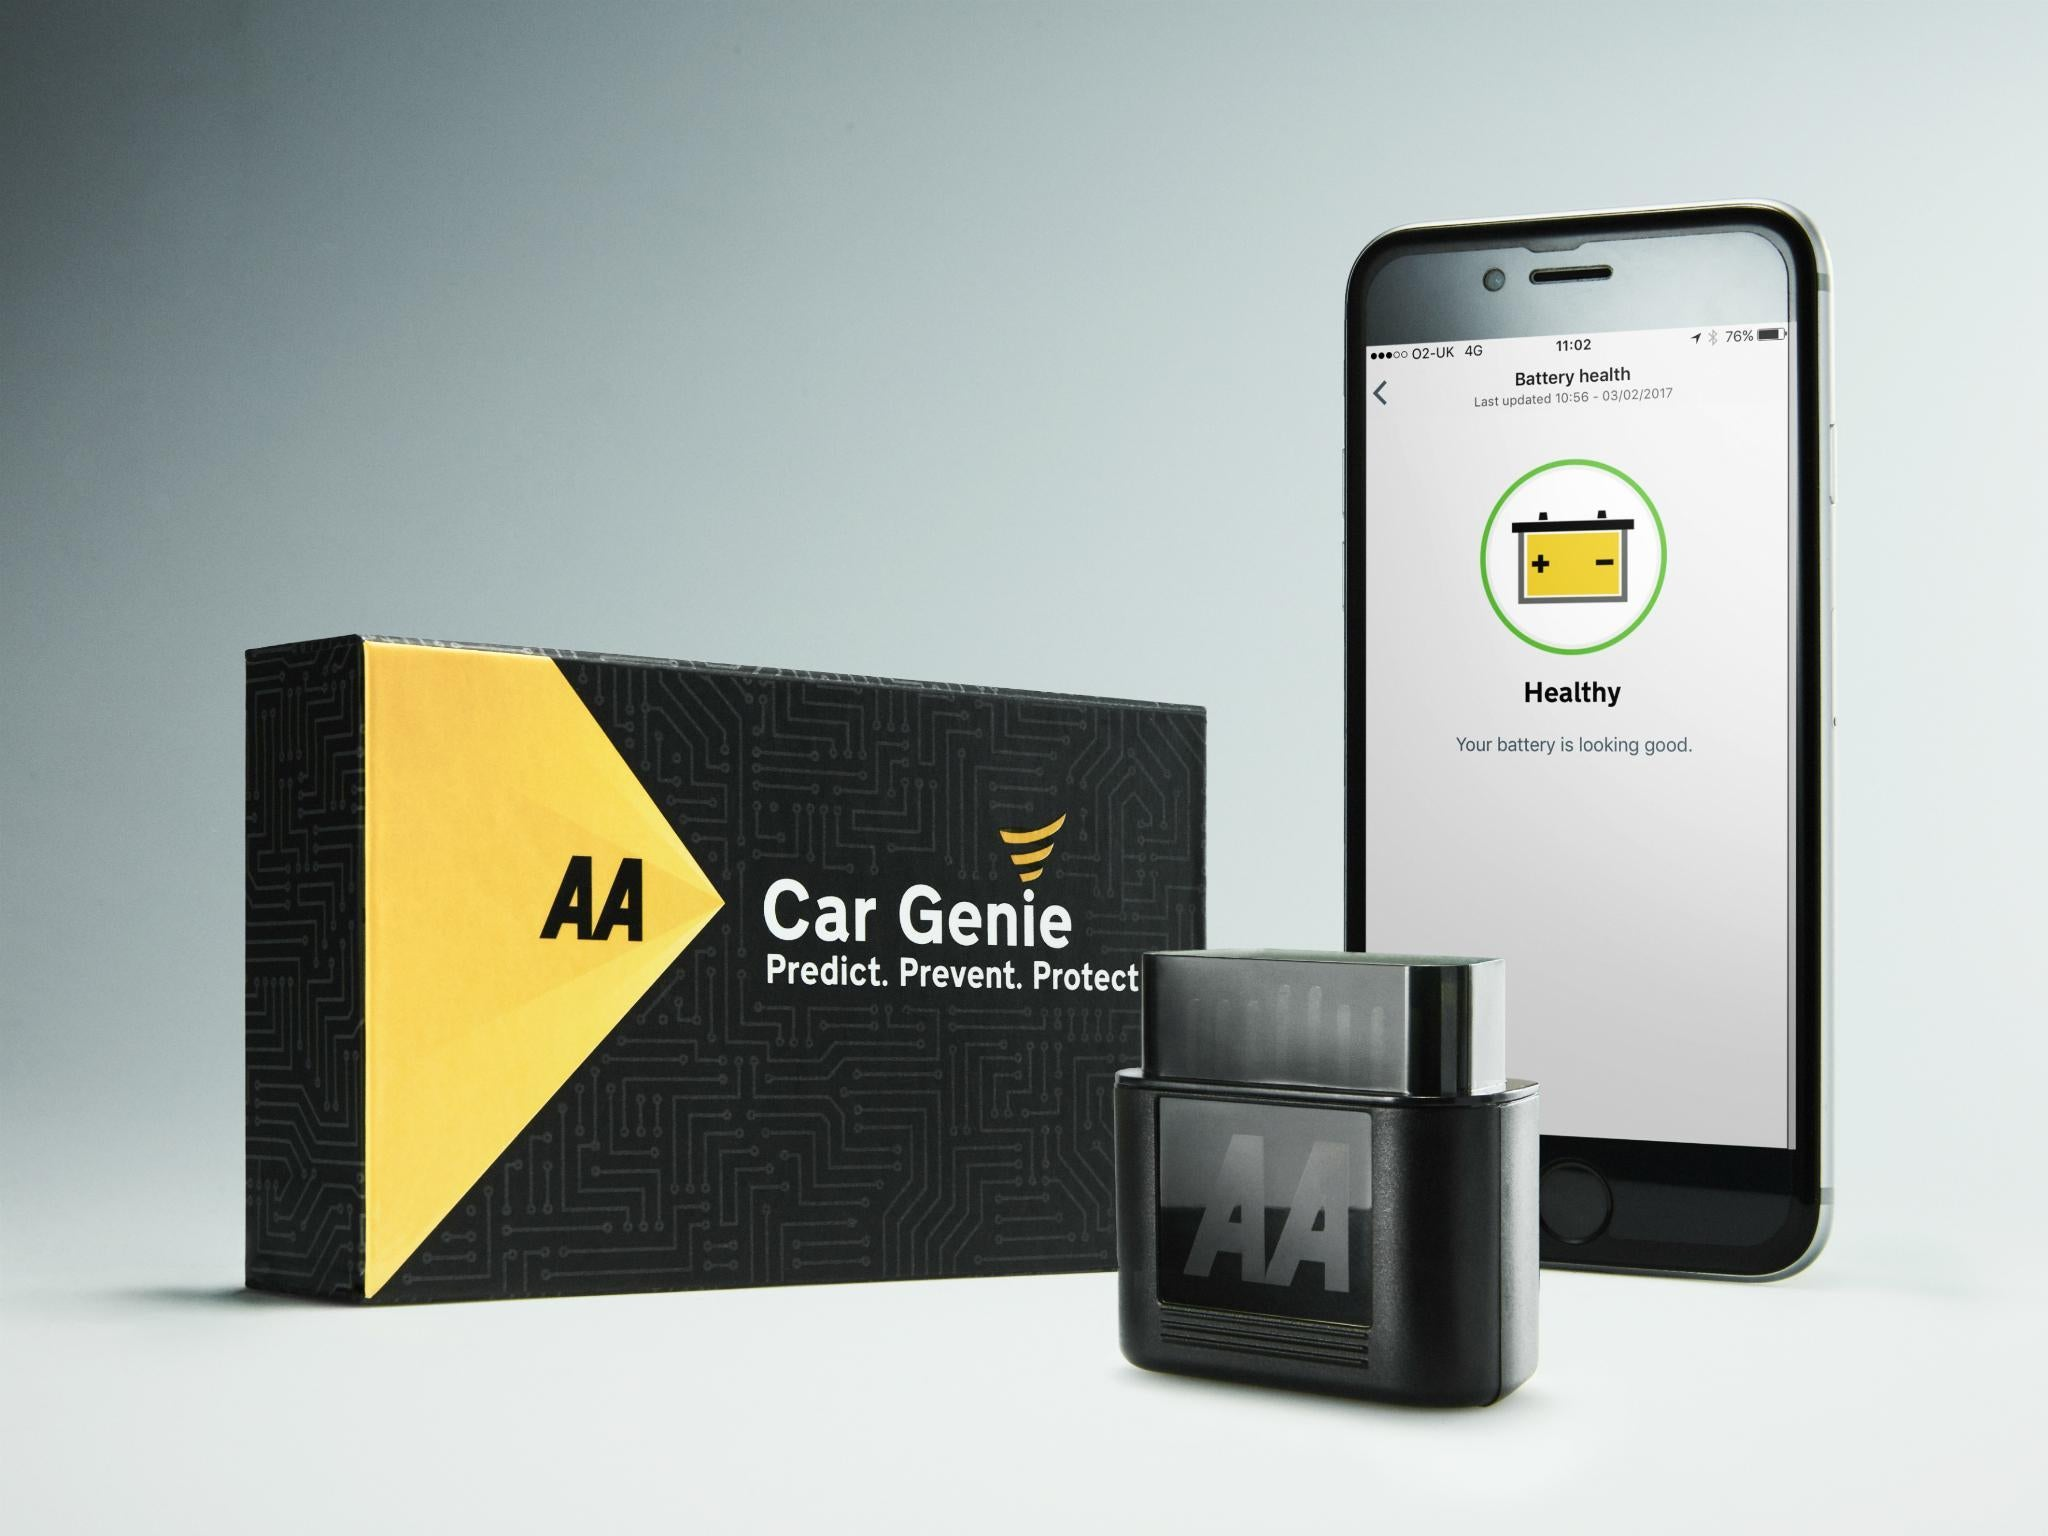 Car Genie: New AA device predicts car breakdowns before they happen